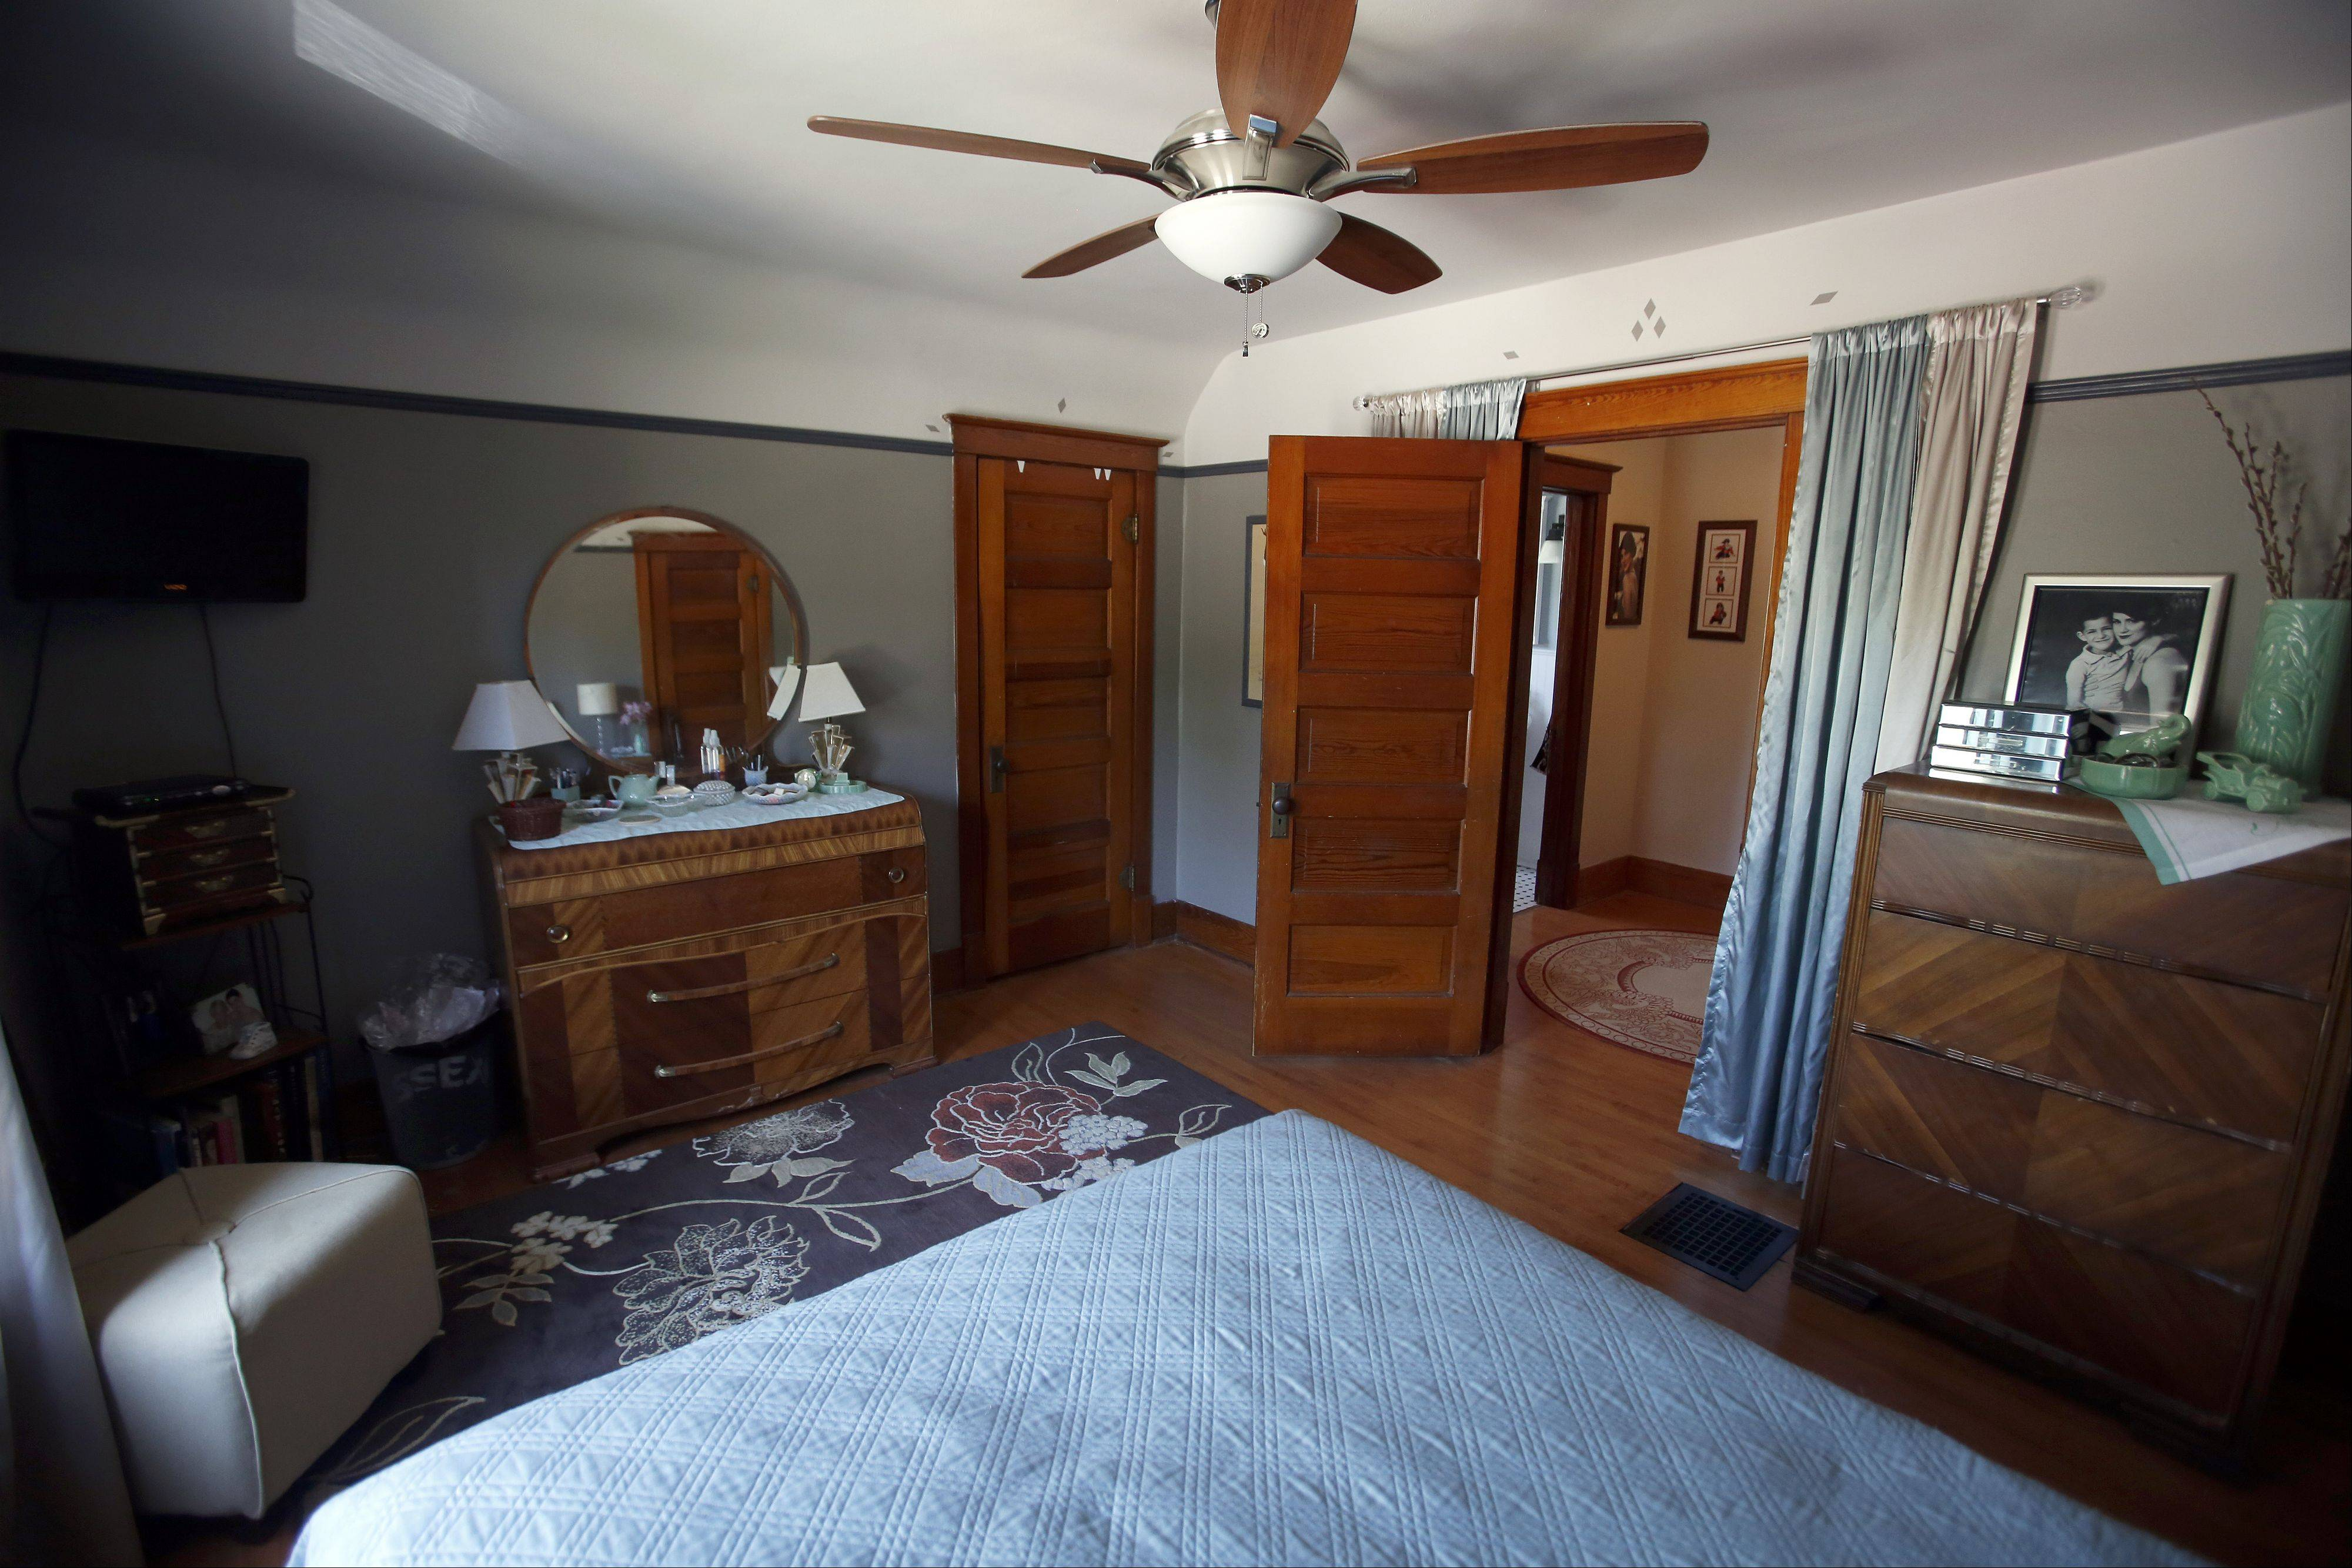 The master bedroom of 439 W. Chicago St., Elgin, which will be one of the stops on the 32nd annual Historic Elgin House Tour.